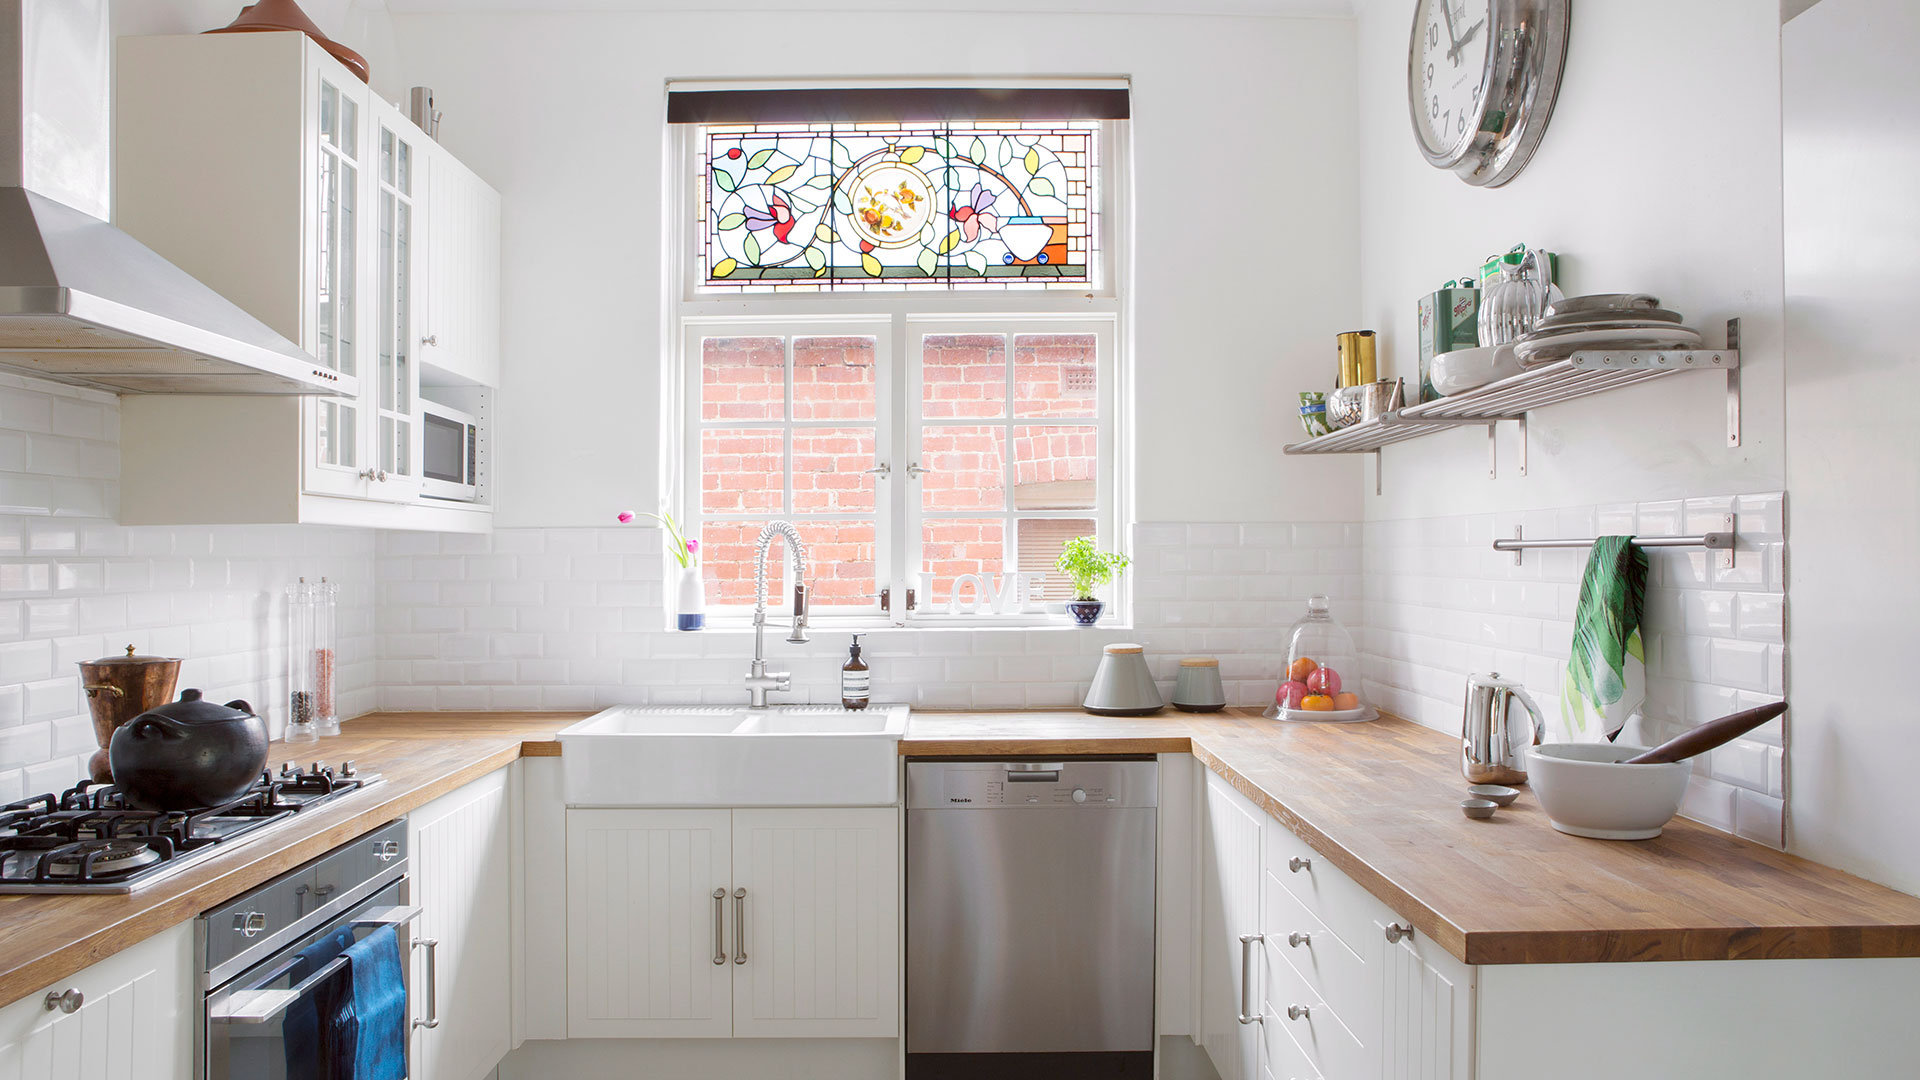 & The 6 most popular kitchen layouts | Australian House and Garden